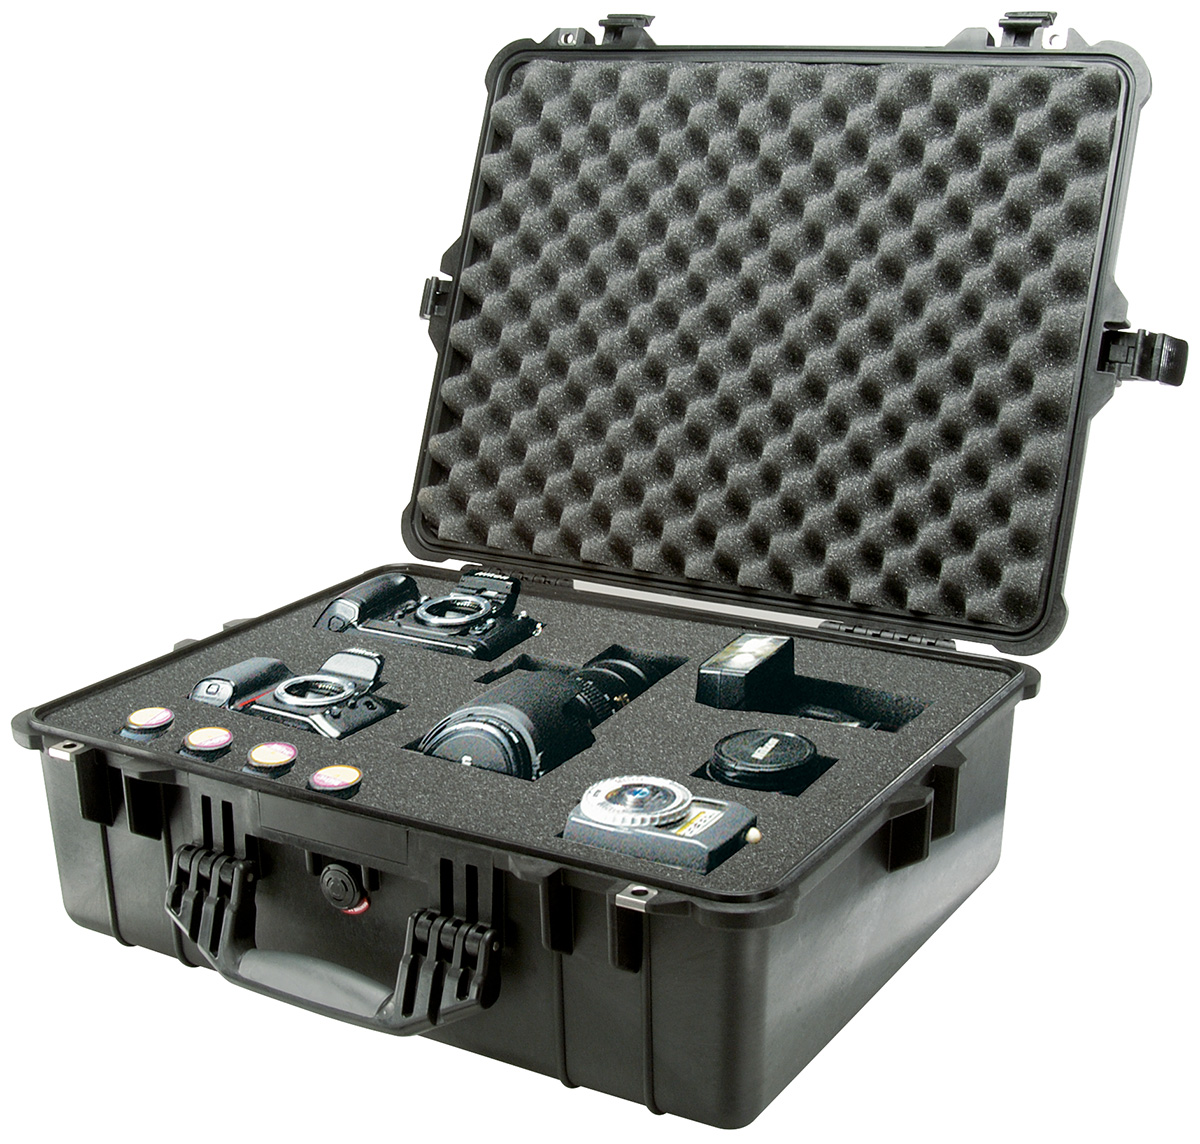 pelican peli products 1600 strong waterproof equipment case